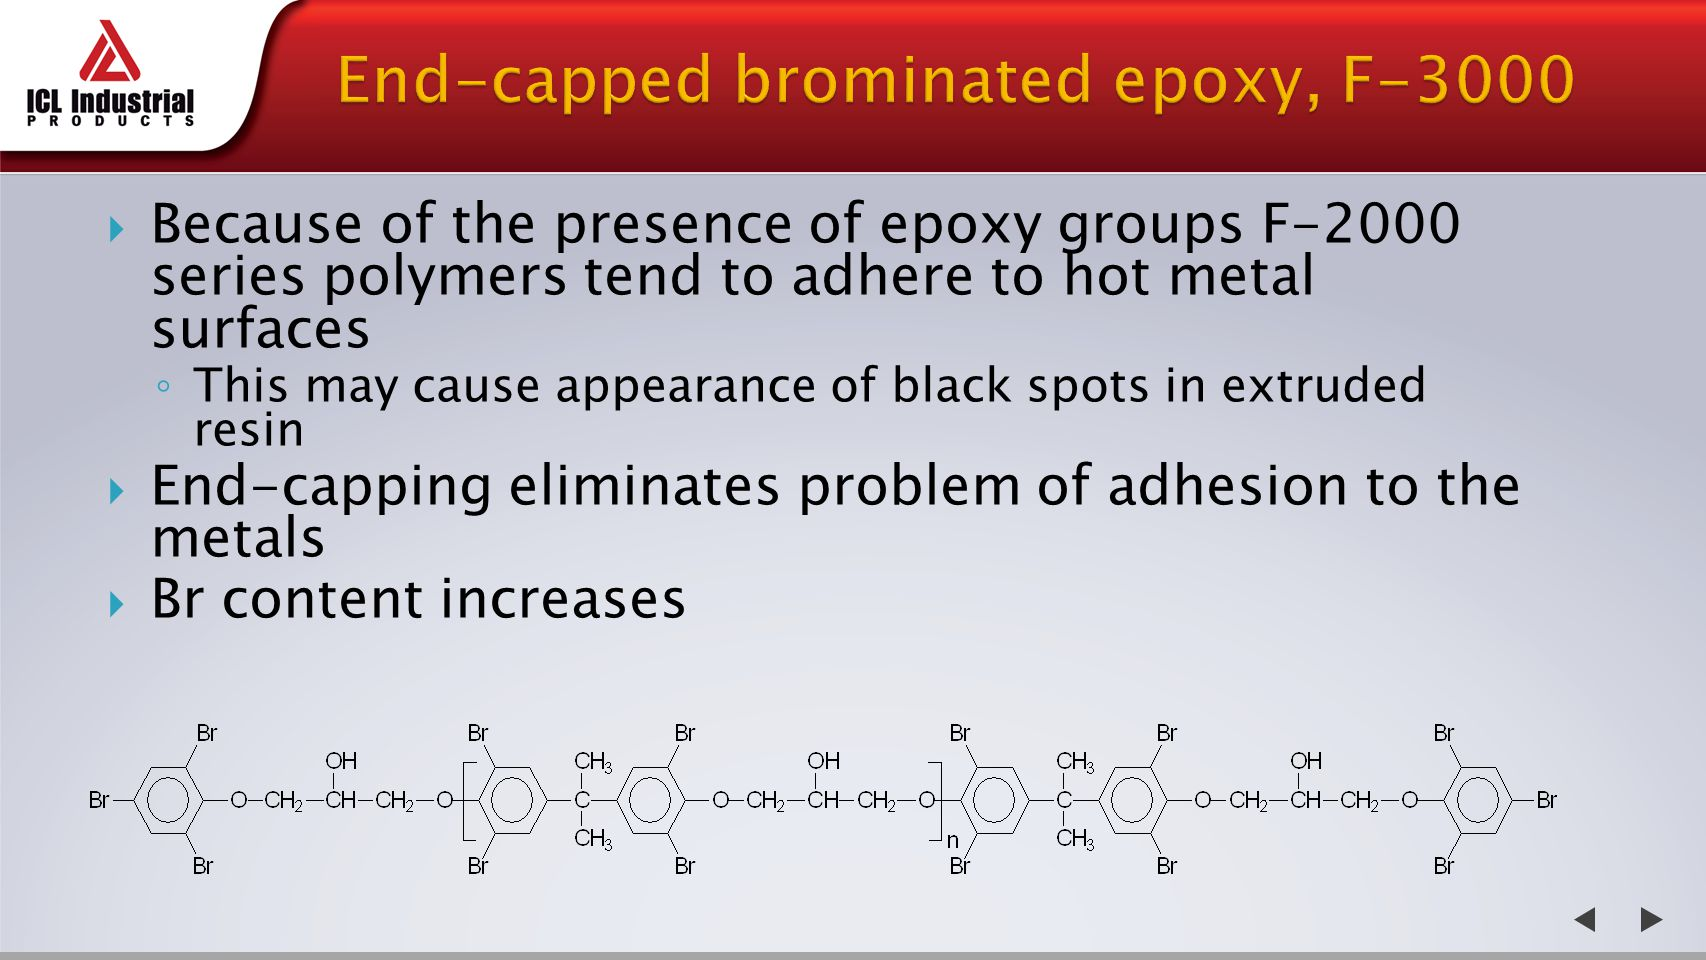  Because of the presence of epoxy groups F-2000 series polymers tend to adhere to hot metal surfaces ◦ This may cause appearance of black spots in extruded resin  End-capping eliminates problem of adhesion to the metals  Br content increases